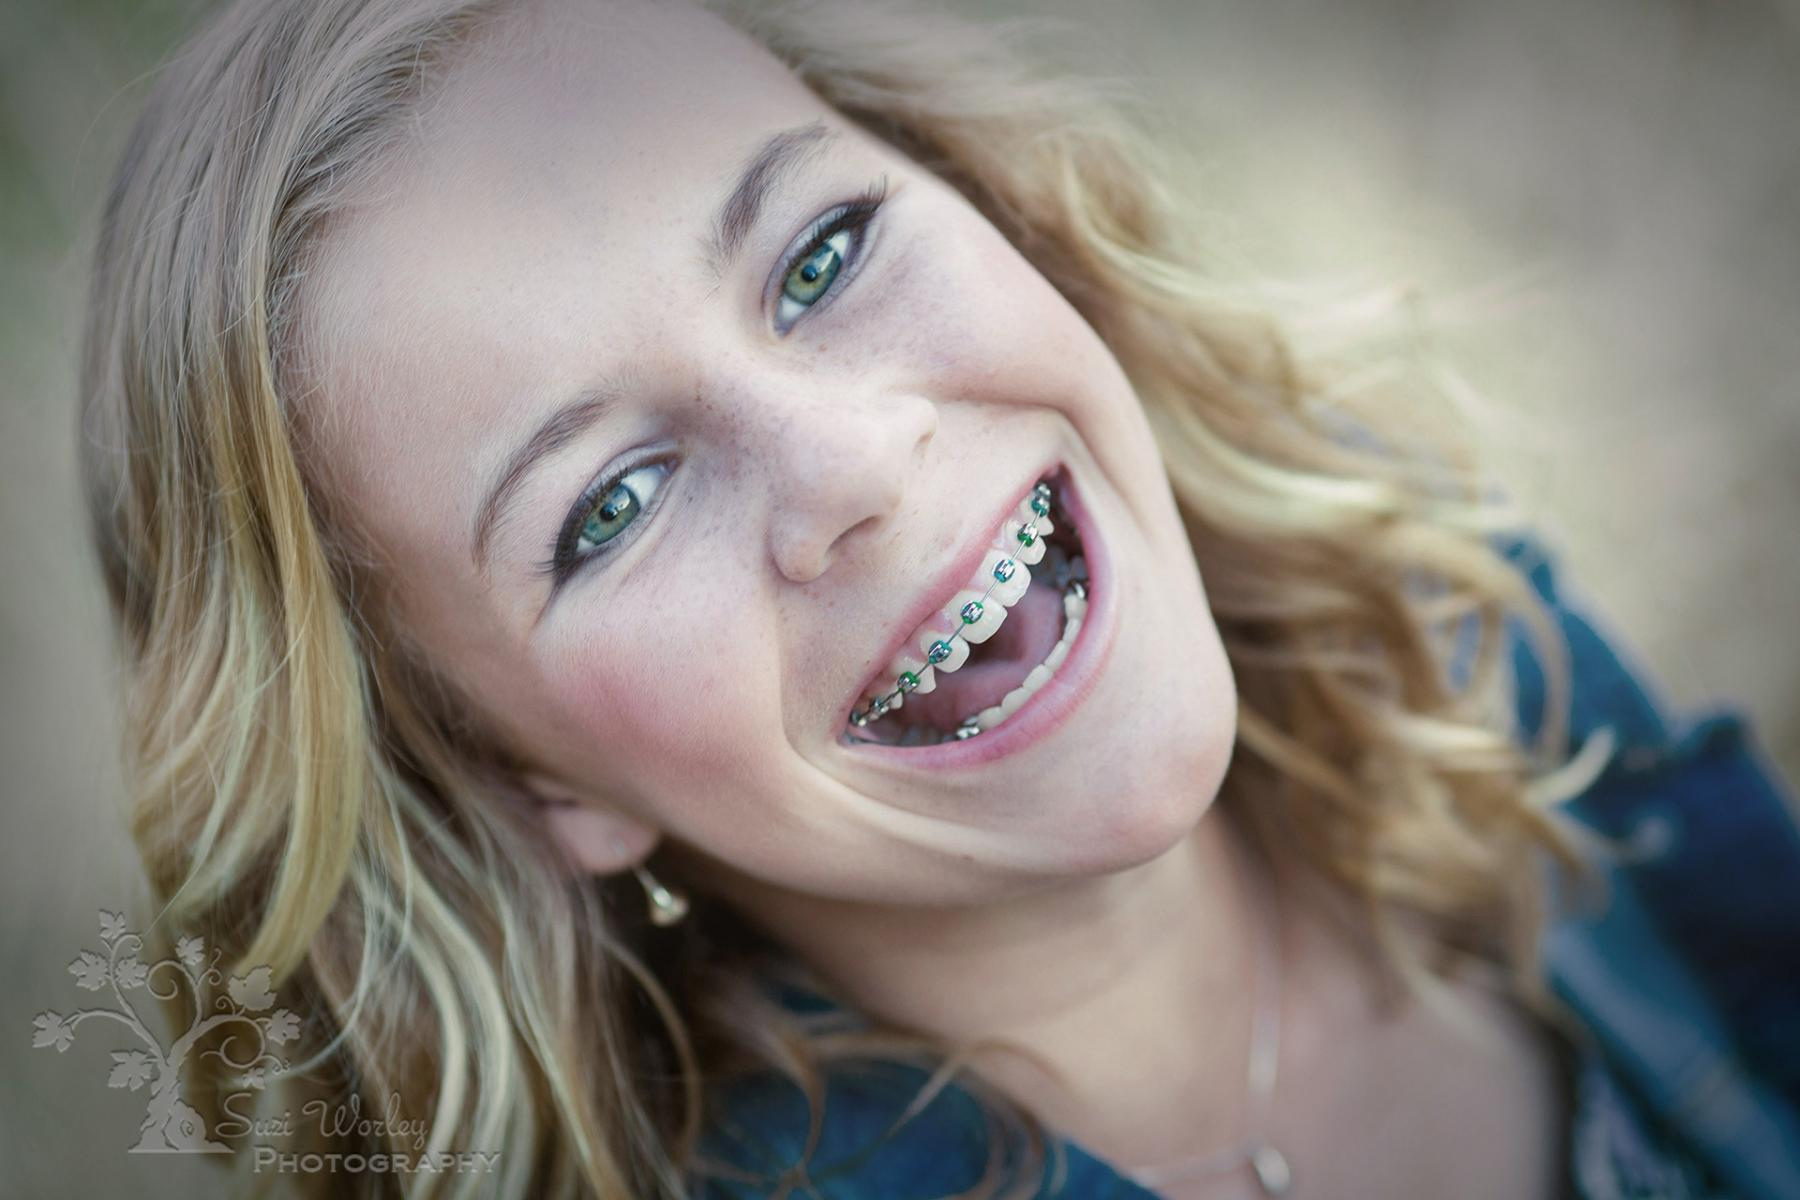 Teenagers are such fun! #SuziWorleyPhotography #FamilyPictures #Braces